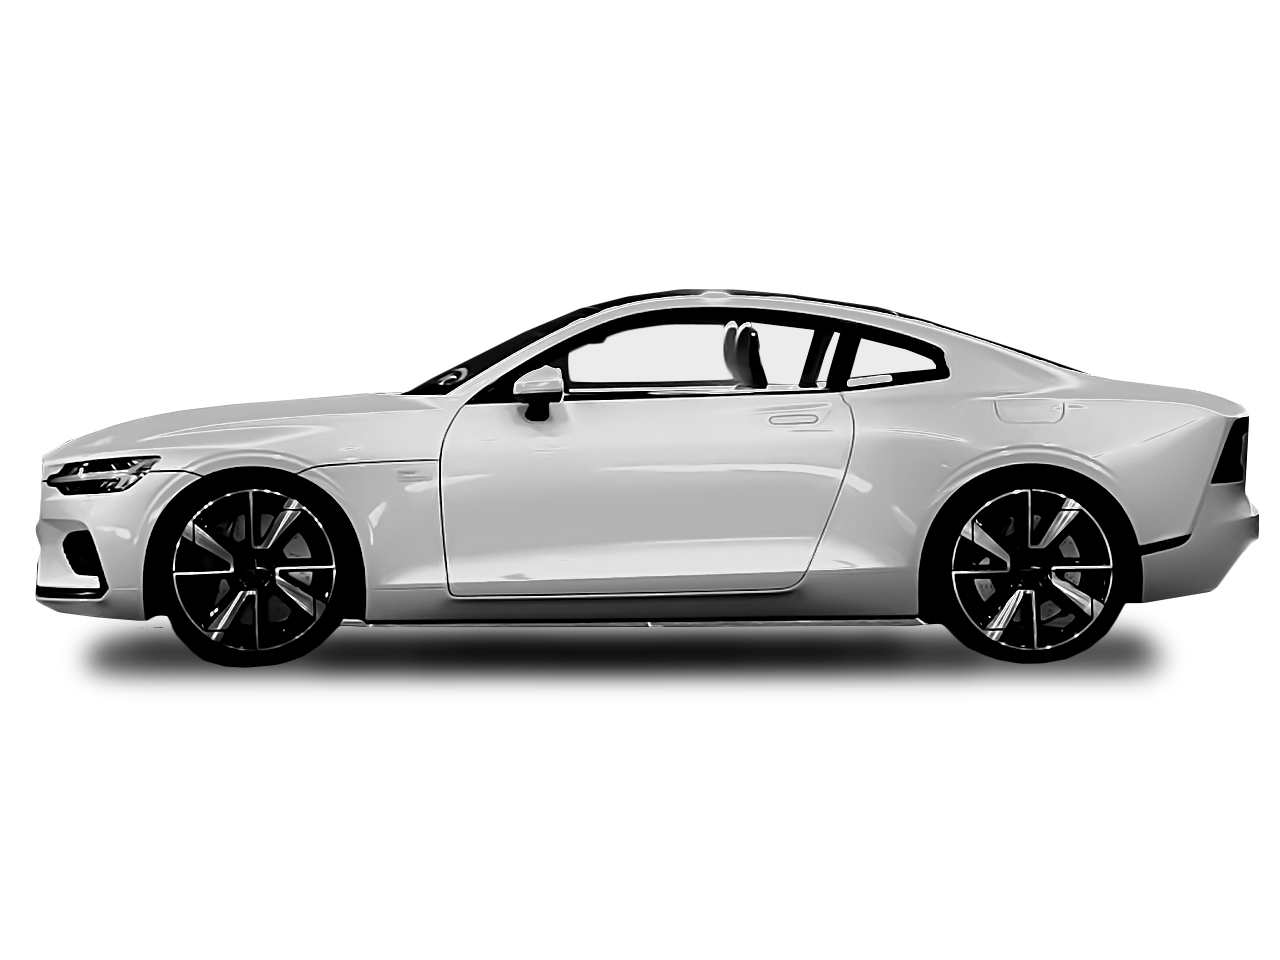 Side view of the Polestar 1